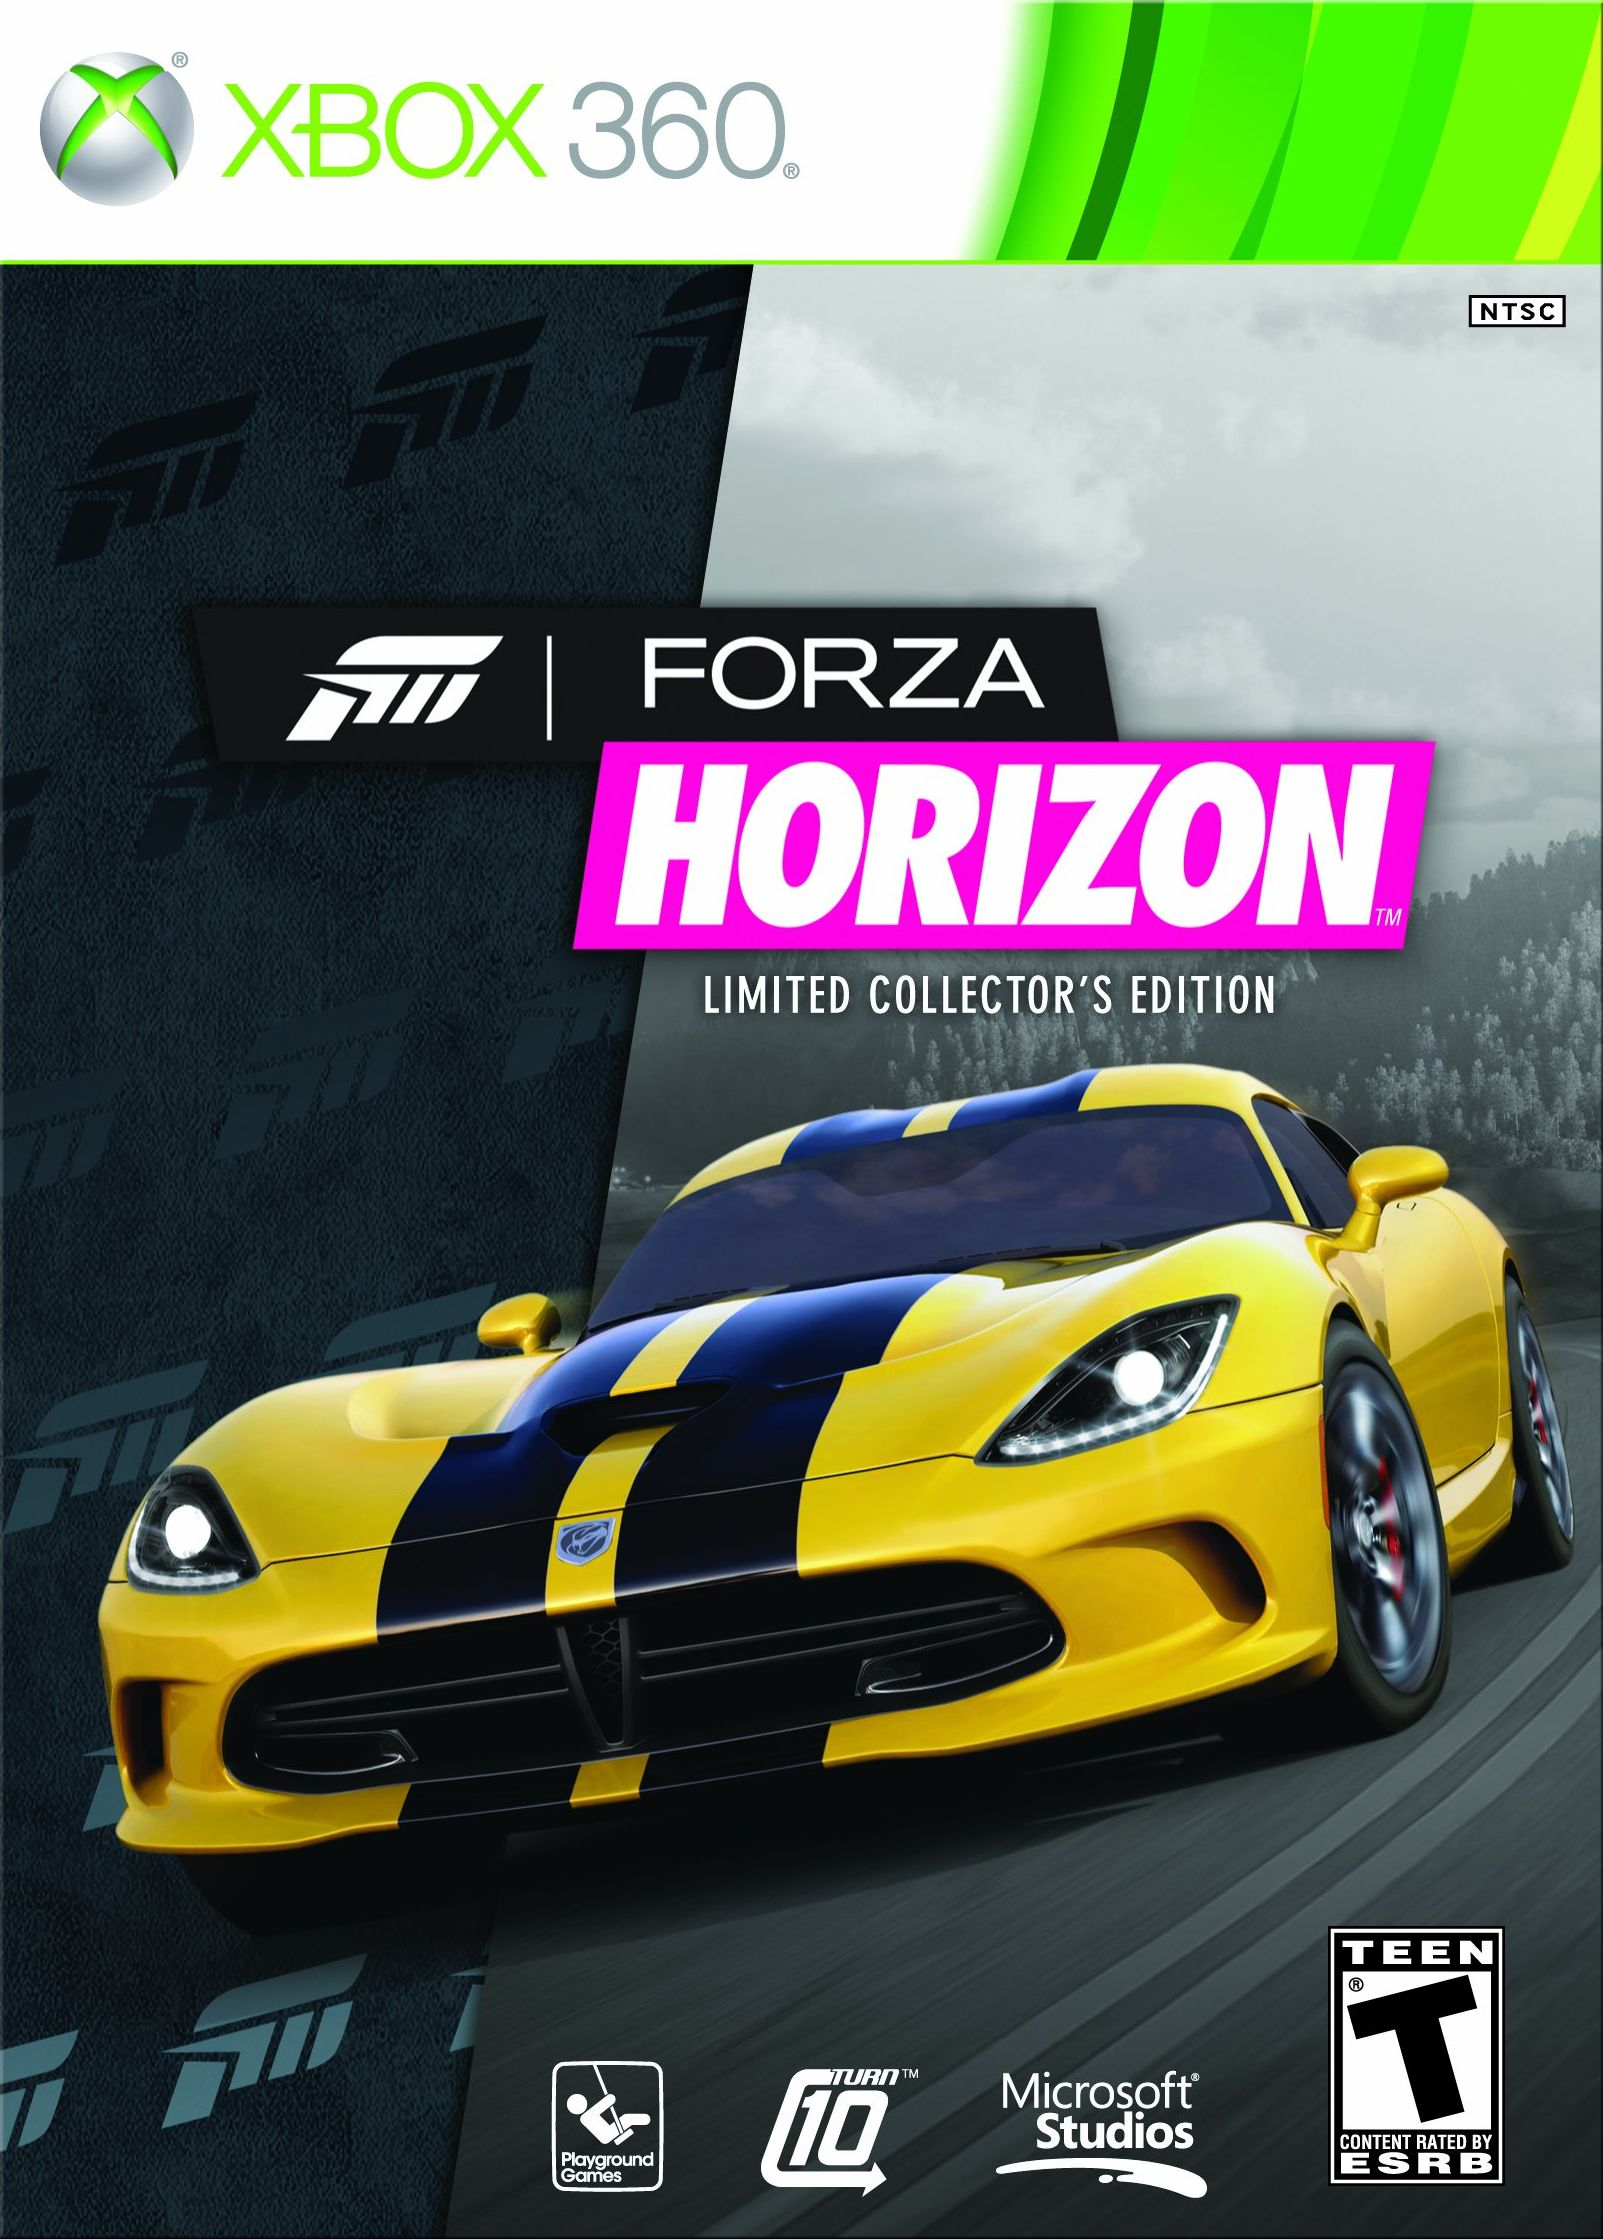 Forza Horizon Limited Edition Release Date Xbox 360